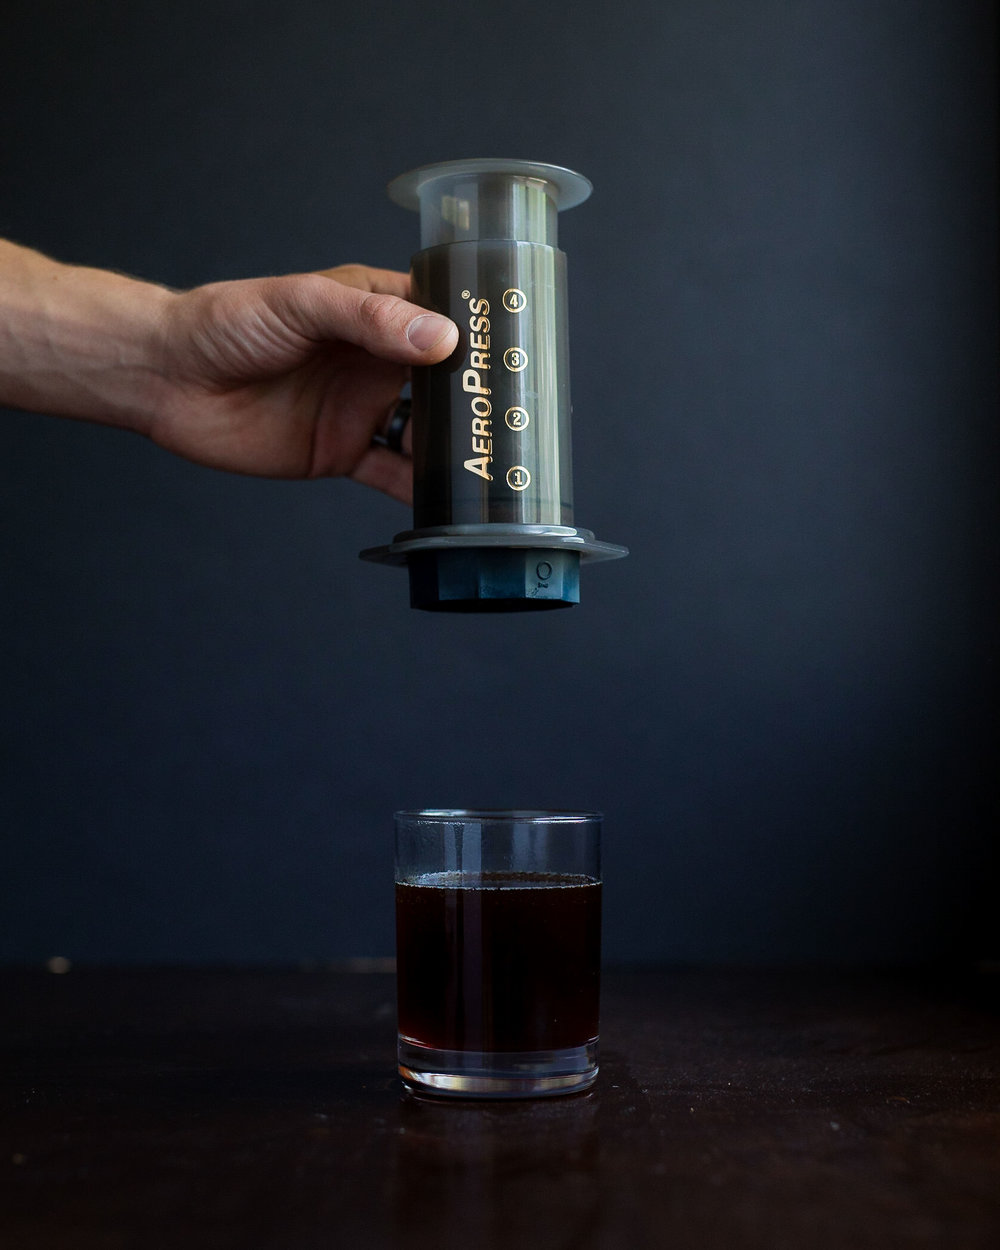 HandsomeWade-Aeropress-Brew-Guide-19.jpg